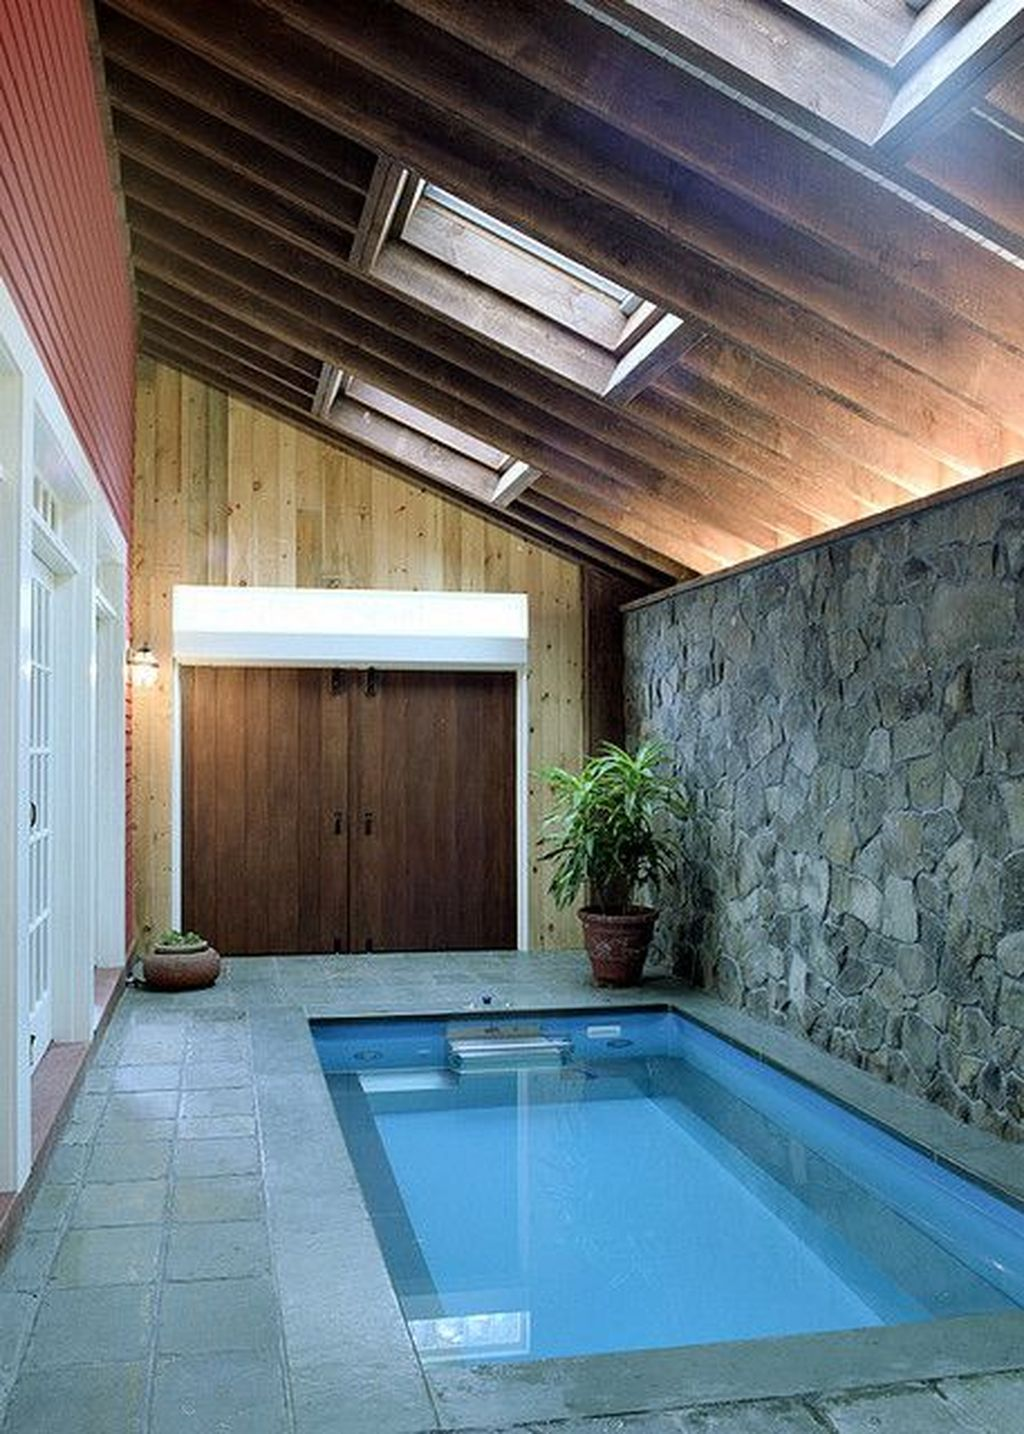 Spa Relax Zone And Swimming Pool For A Perfect Wellness